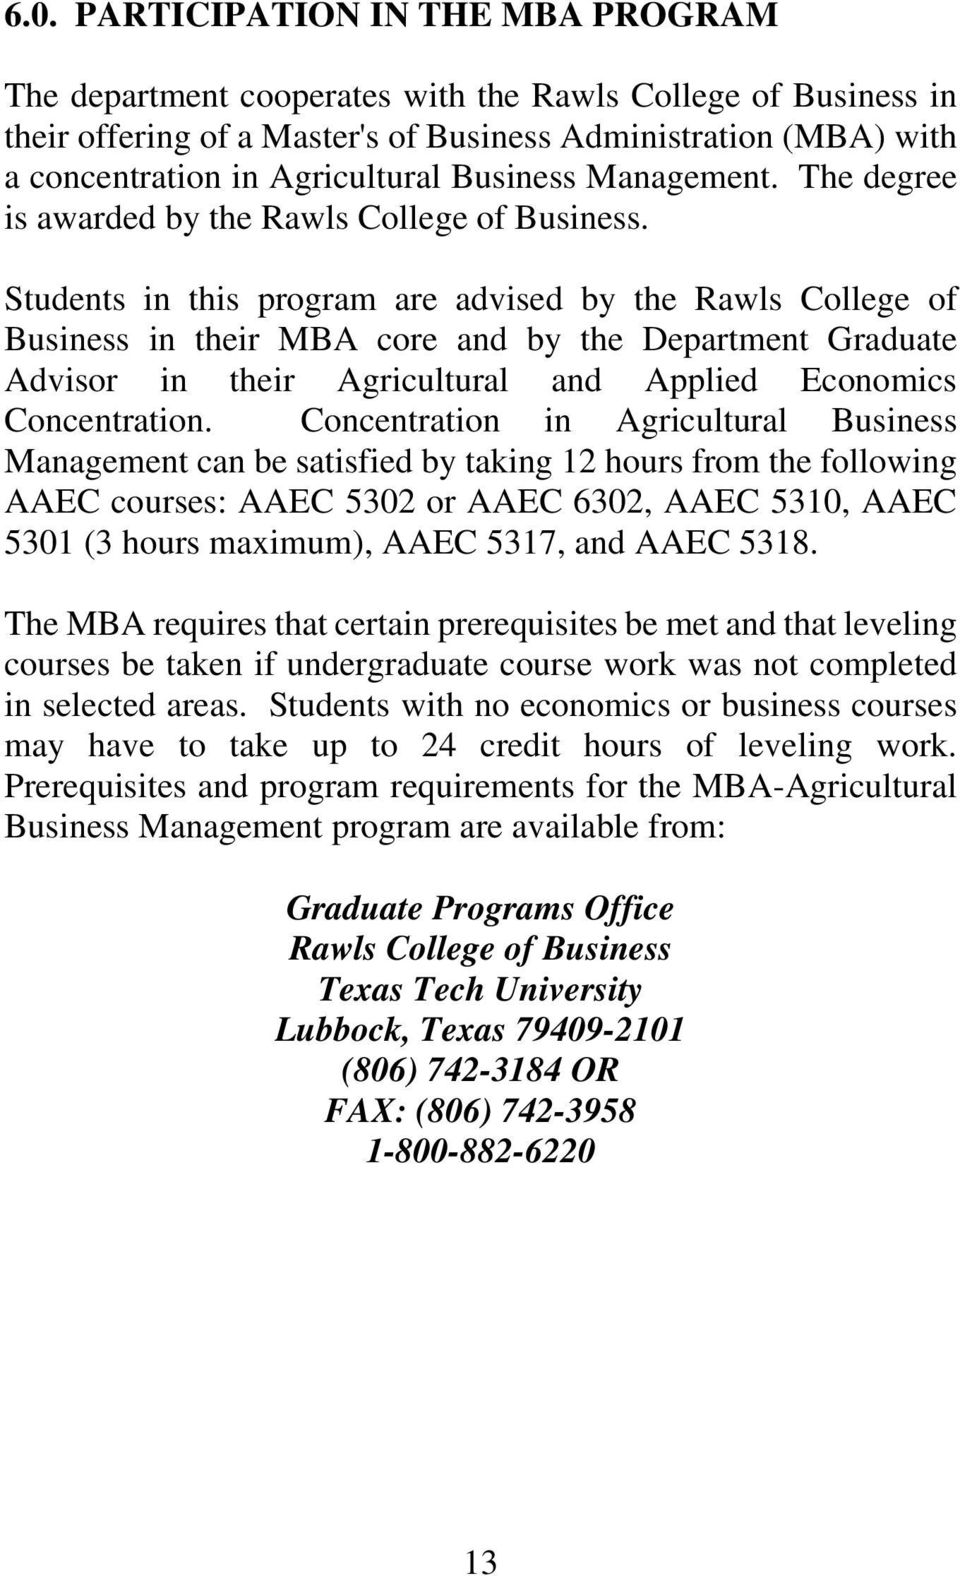 Students in this program are advised by the Rawls College of Business in their MBA core and by the Department Graduate Advisor in their Agricultural and Applied Economics Concentration.